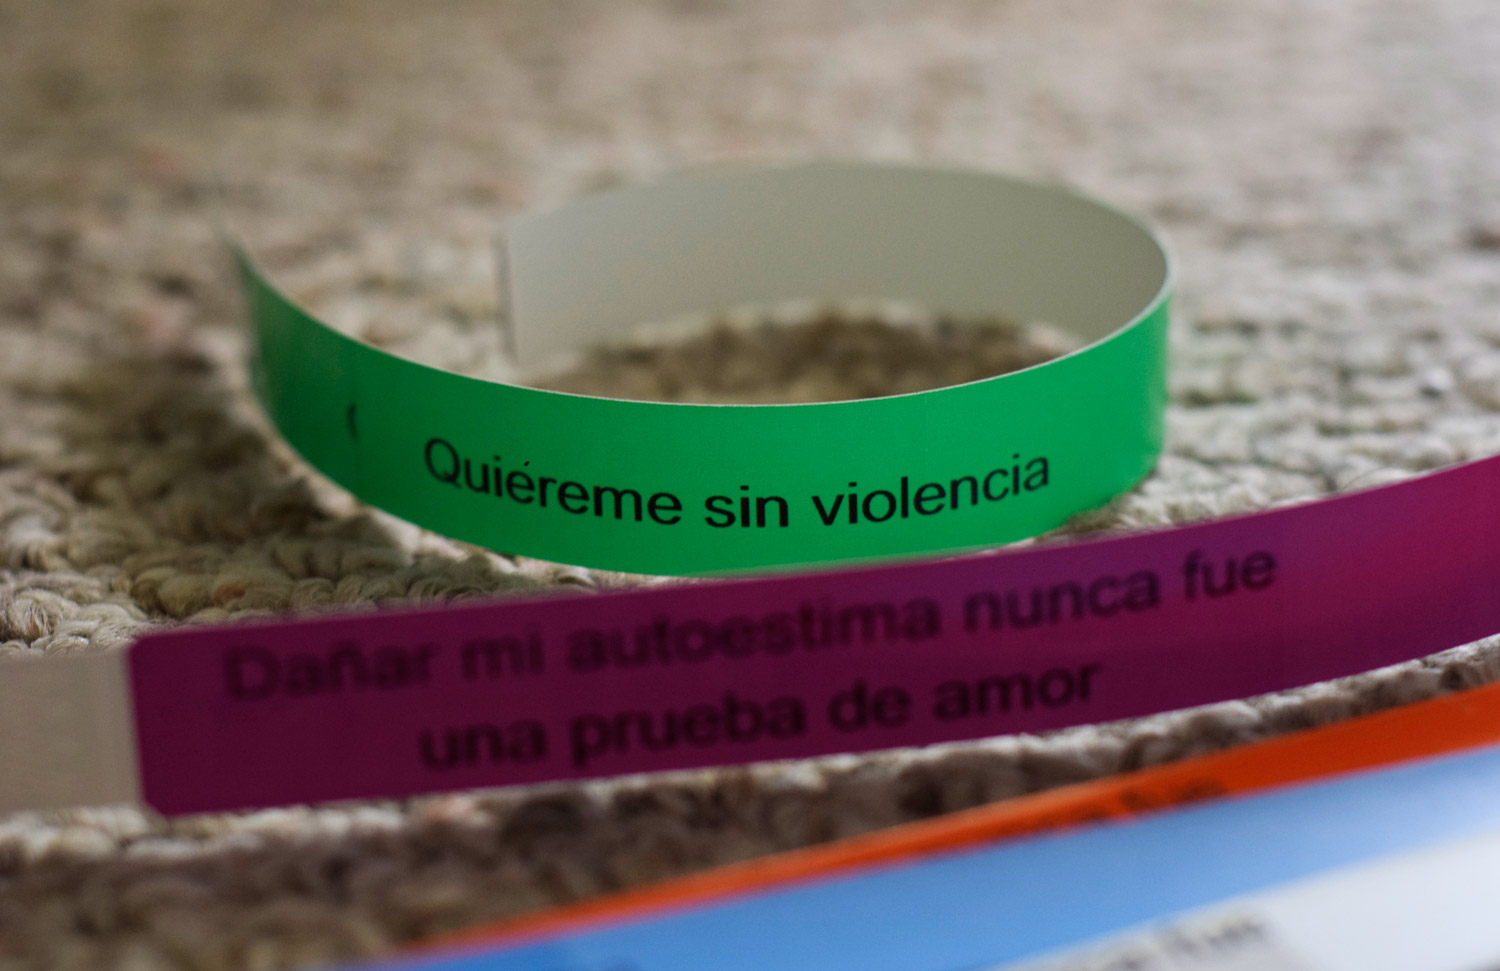 Wristband distributed during campaign events to participants